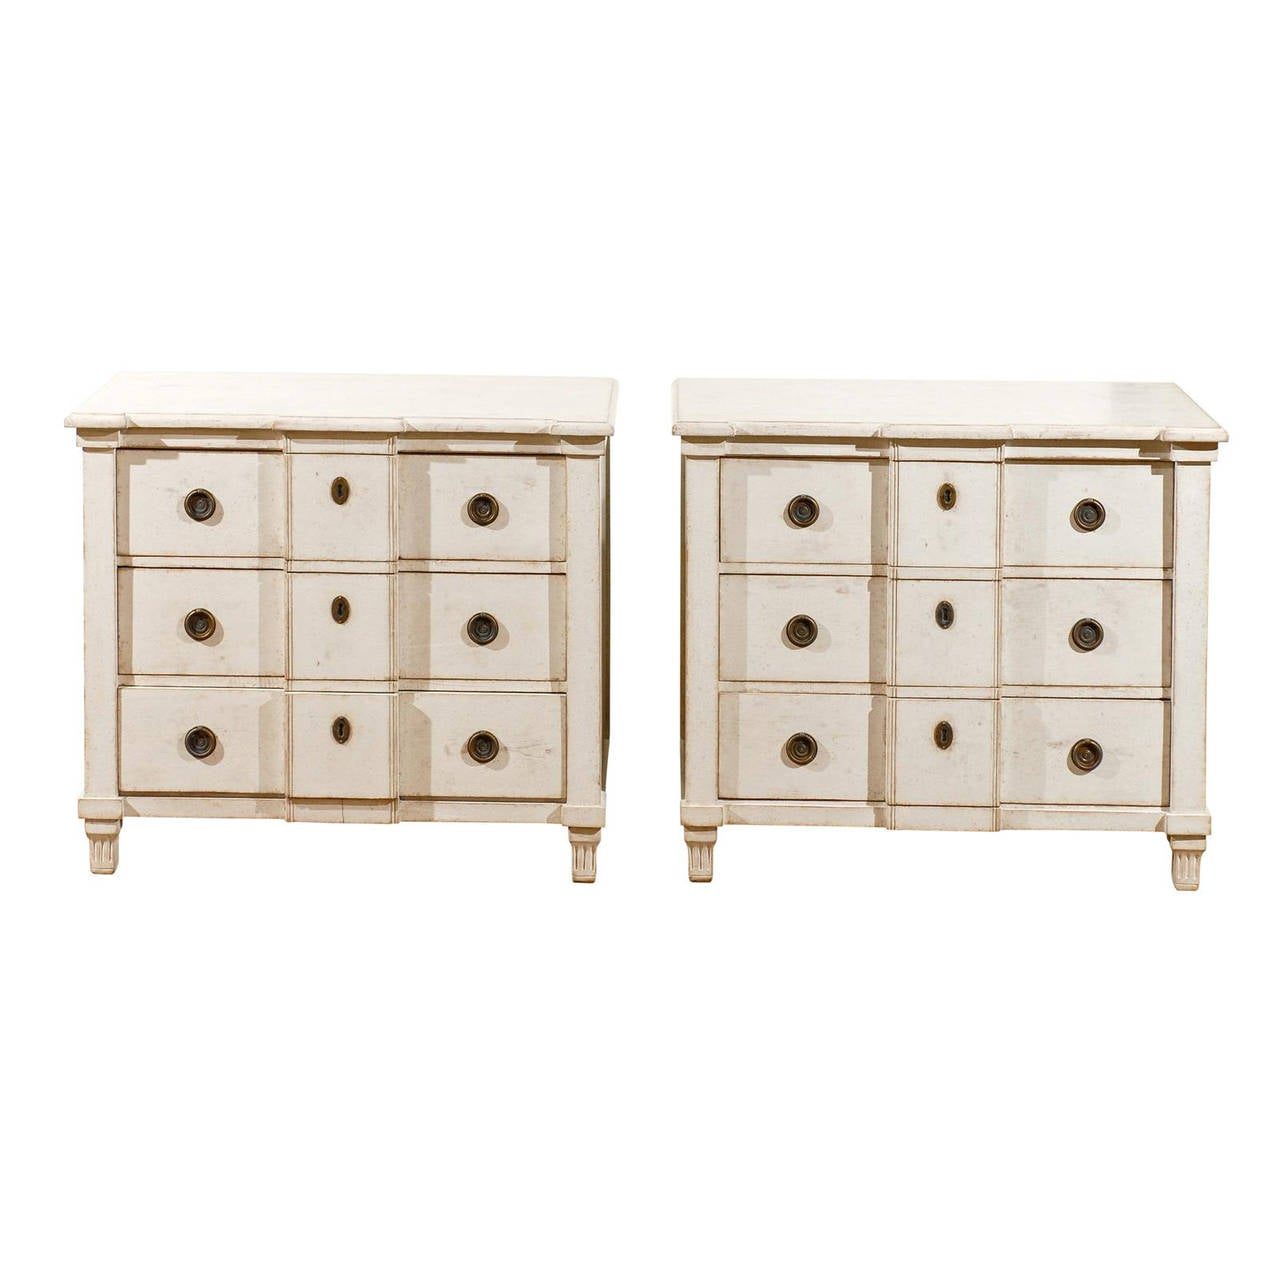 Pair of Swedish 1880s Painted Wood Breakfront Three-Drawer Bedside Commodes